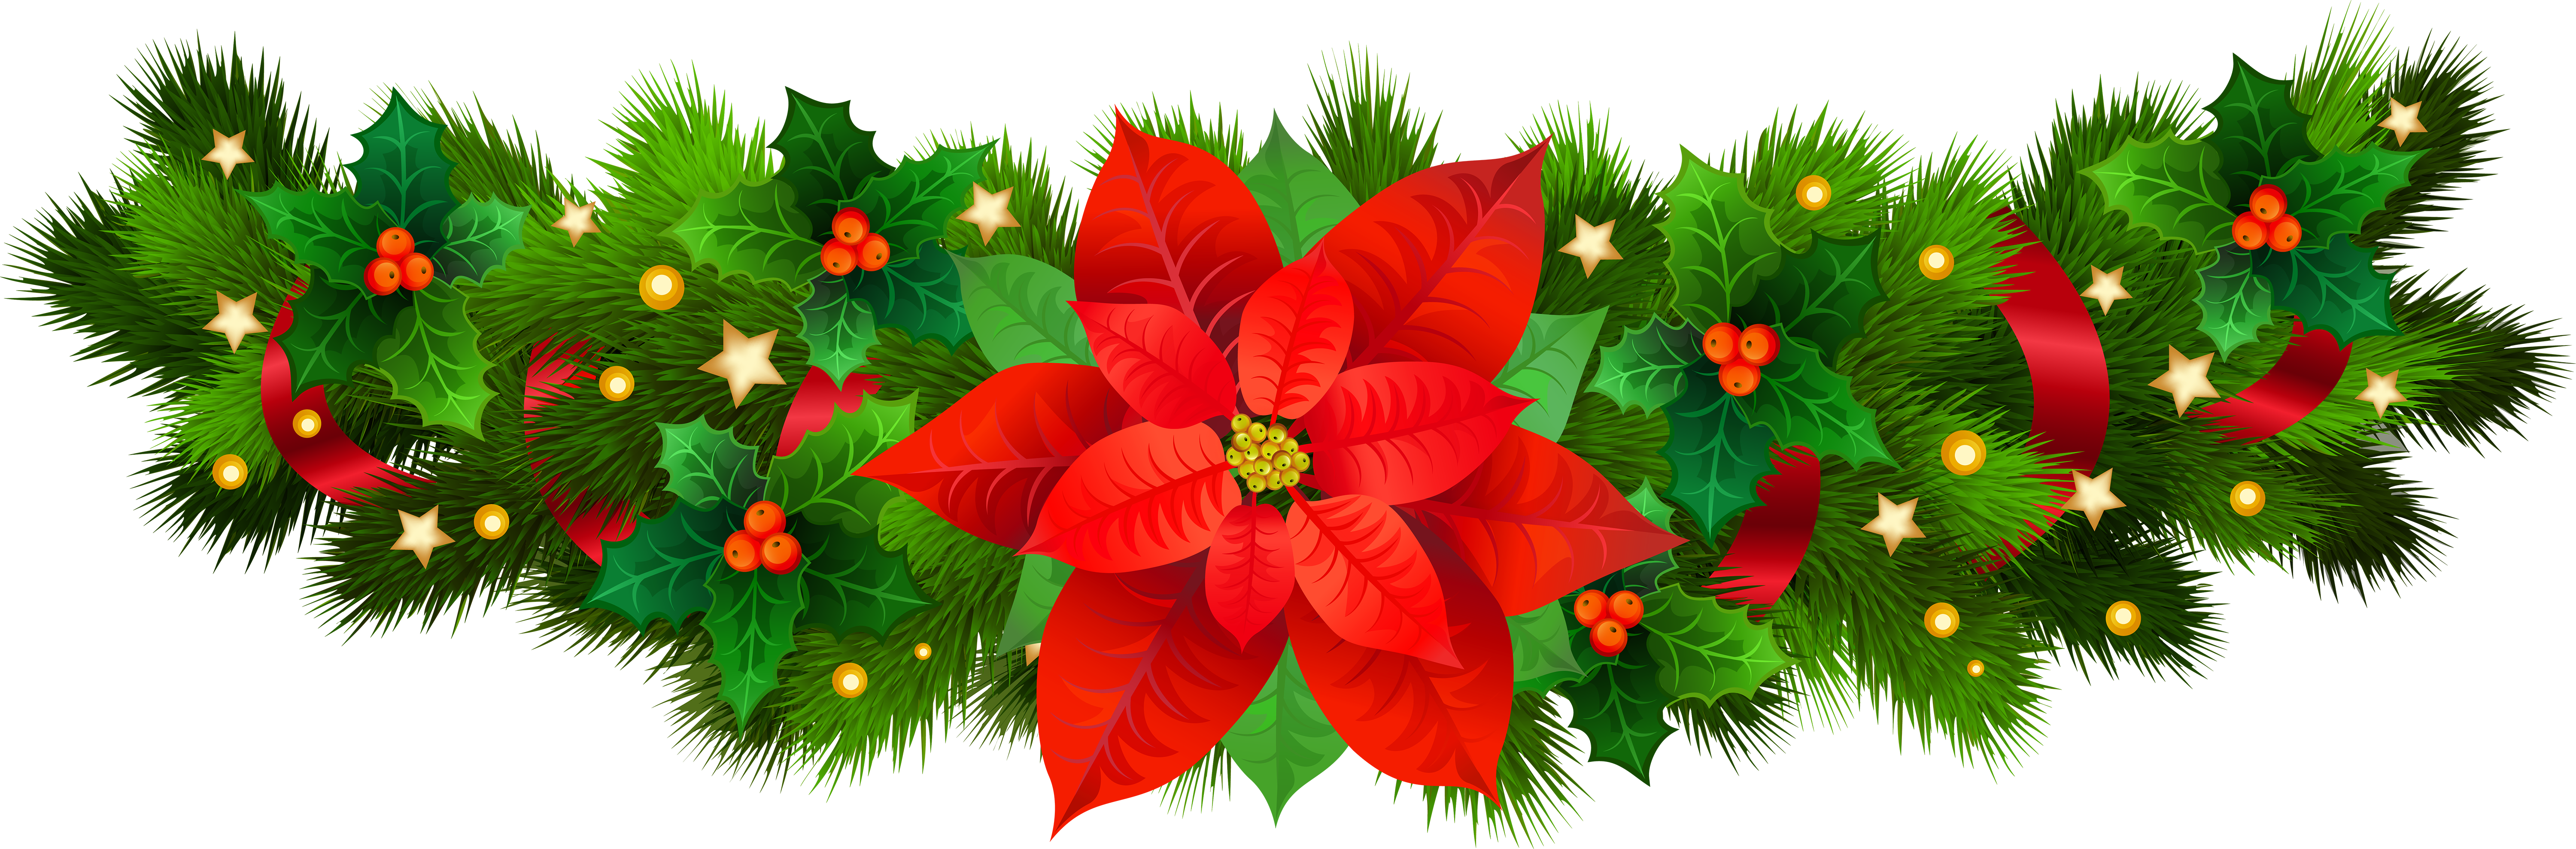 Christmas Decorative With Poinsettia Png Clip Art Image Clip Art Art Images Free Clip Art